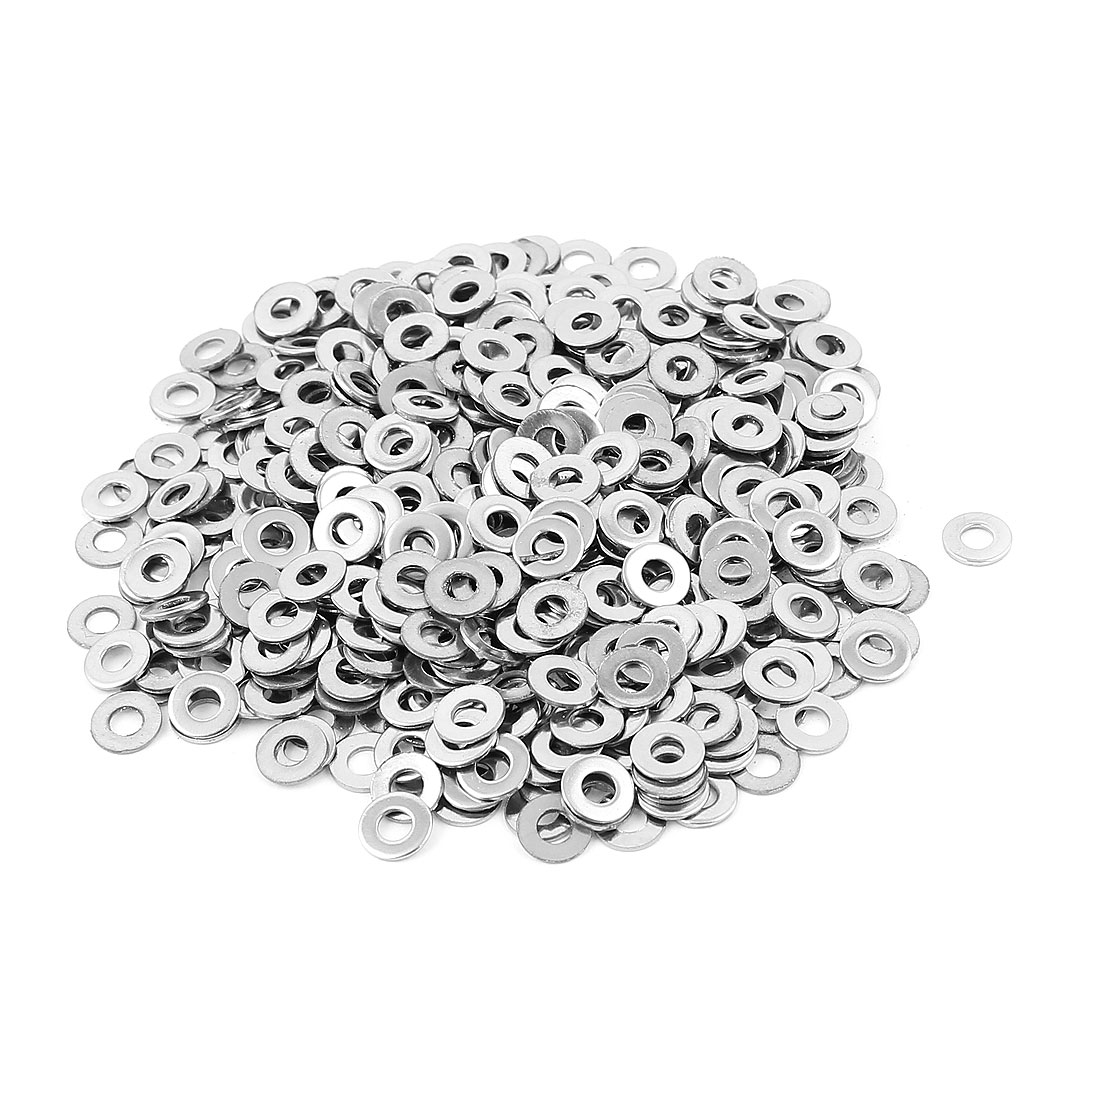 500pcs 304 Stainless Steel M3 Flat Washers Fasteners Silver Tone